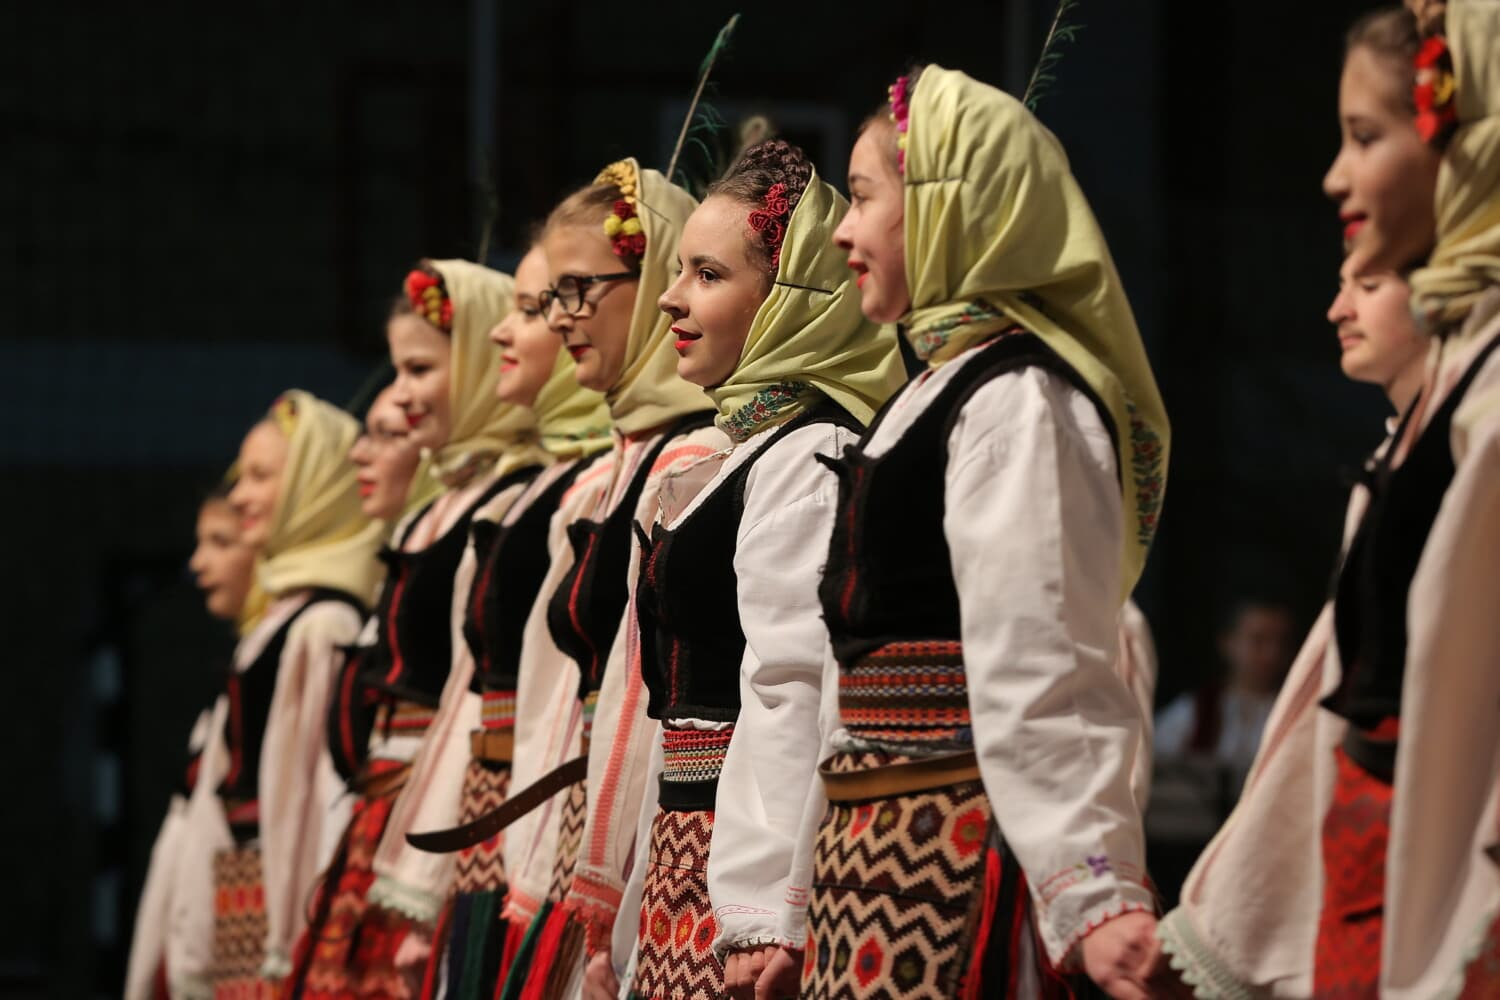 girls, dancing, traditional, folk, costume, person, fashion, woman, competition, theatre